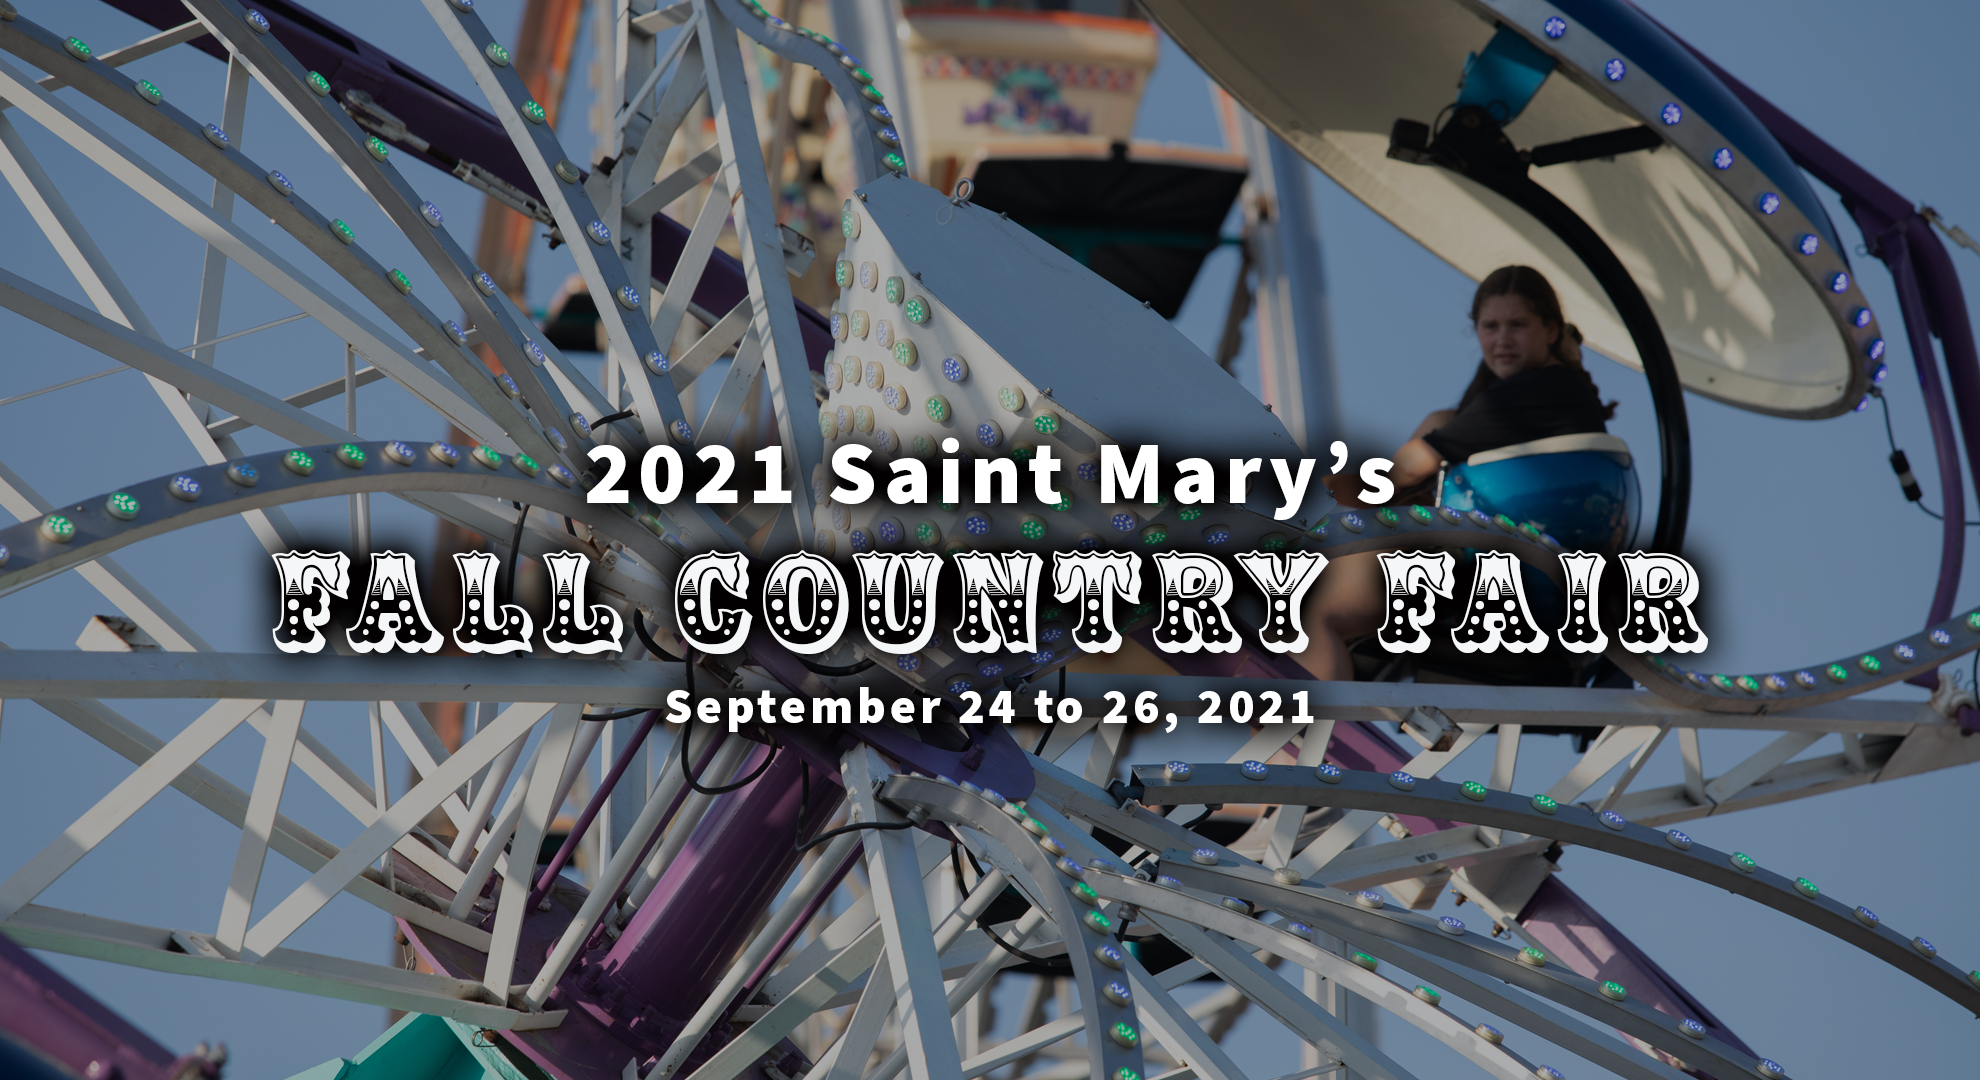 Join us for the 3rd Annual Fall Country Fair at Saint Mary Church in Middletown, NJ!